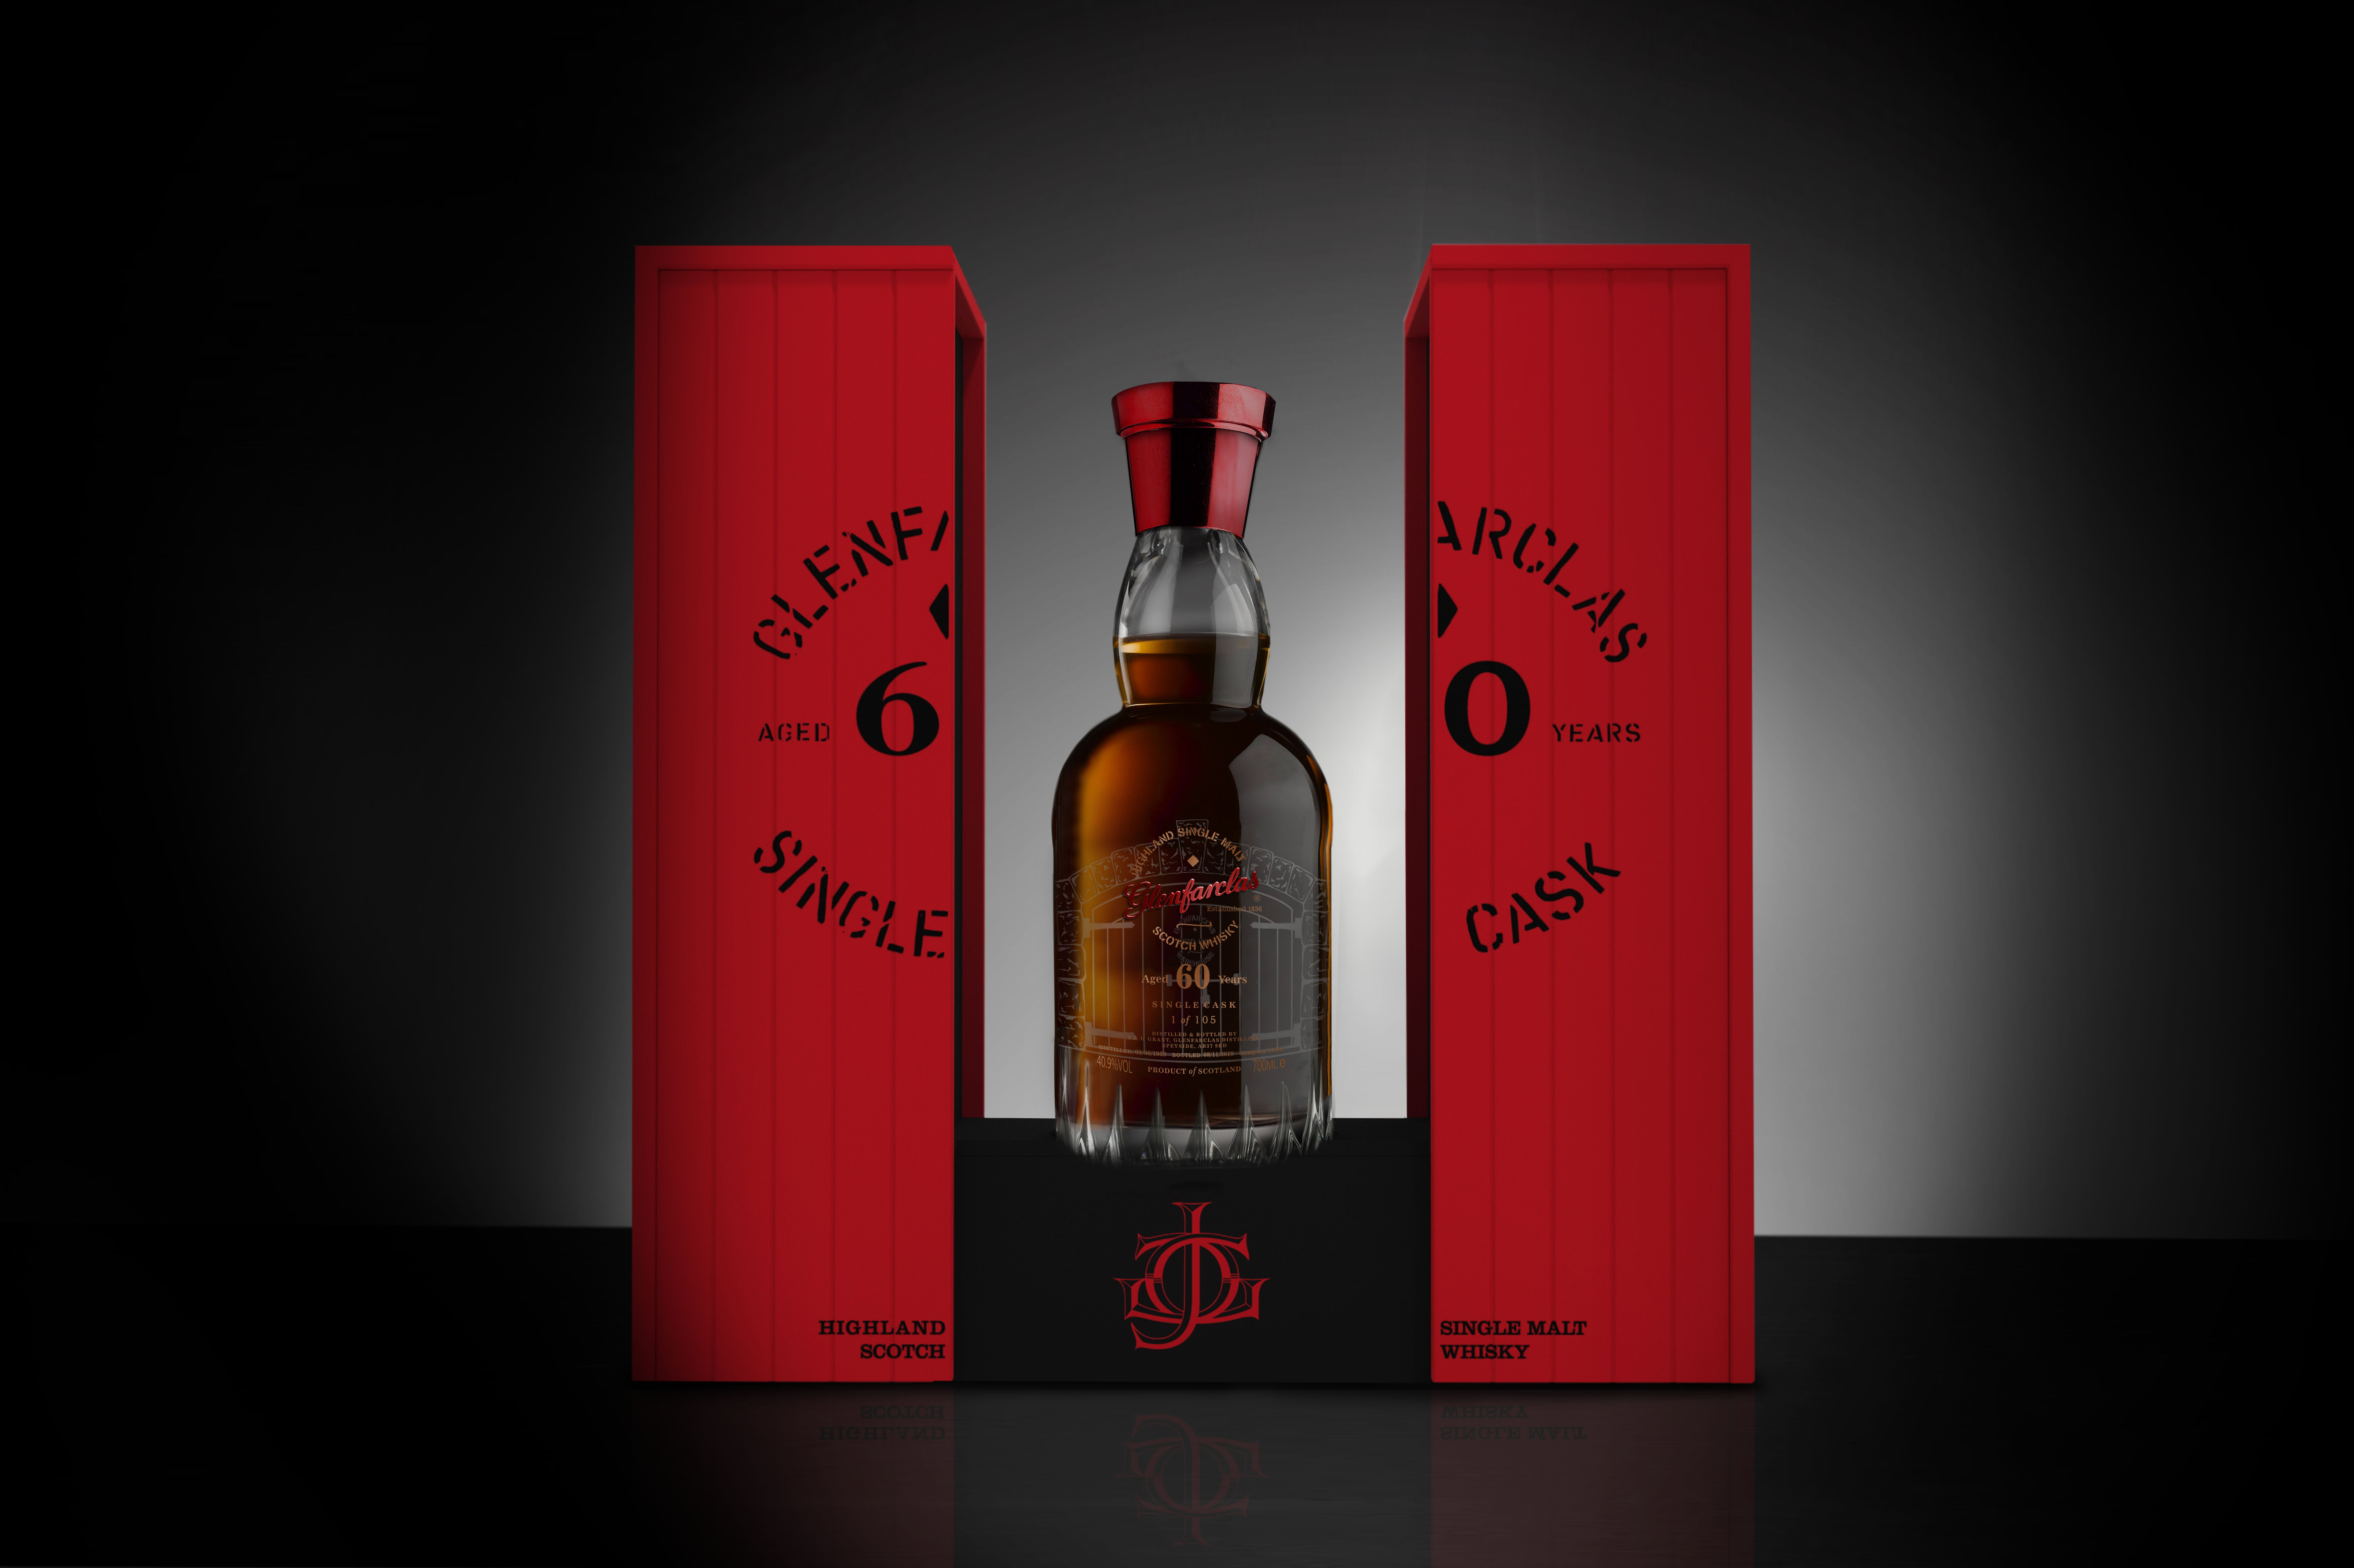 Speyside distillery Glenfarclas has released a limited edition 60-year-old Scotch whisky in the UK, priced at £19,500